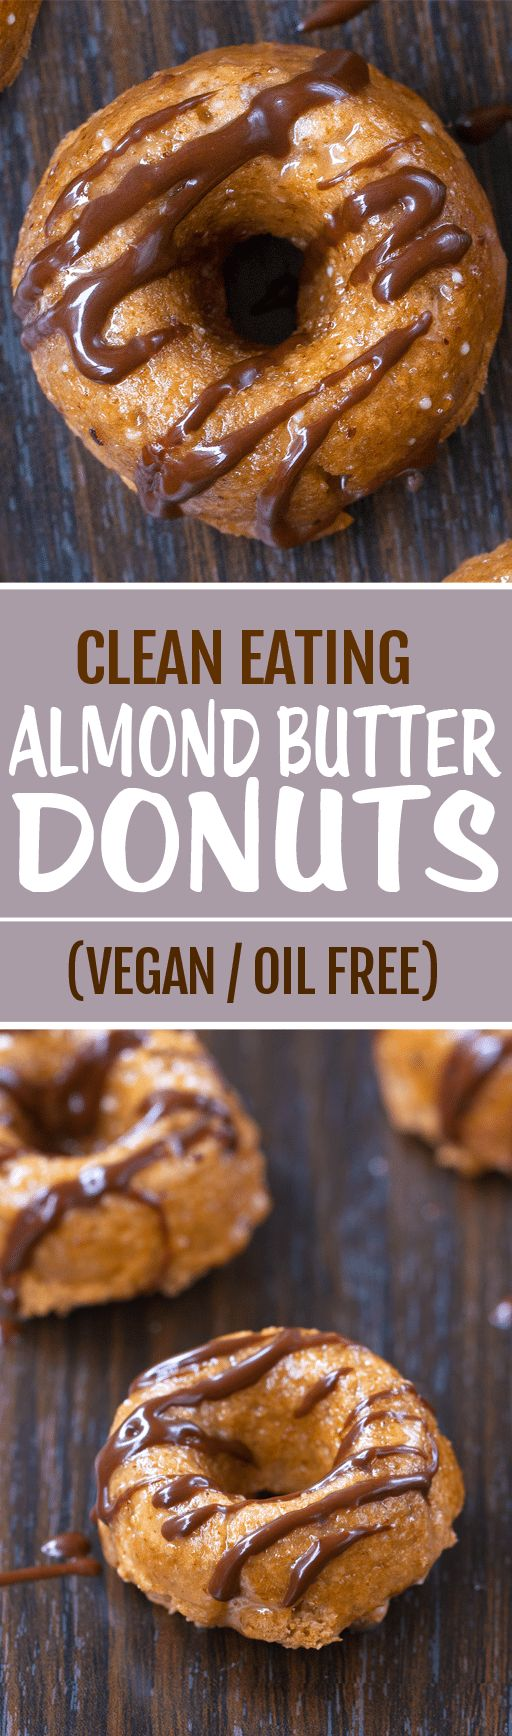 Super Healthy Almond Butter Donuts, made with NO oil, and no eggs, totally vegan